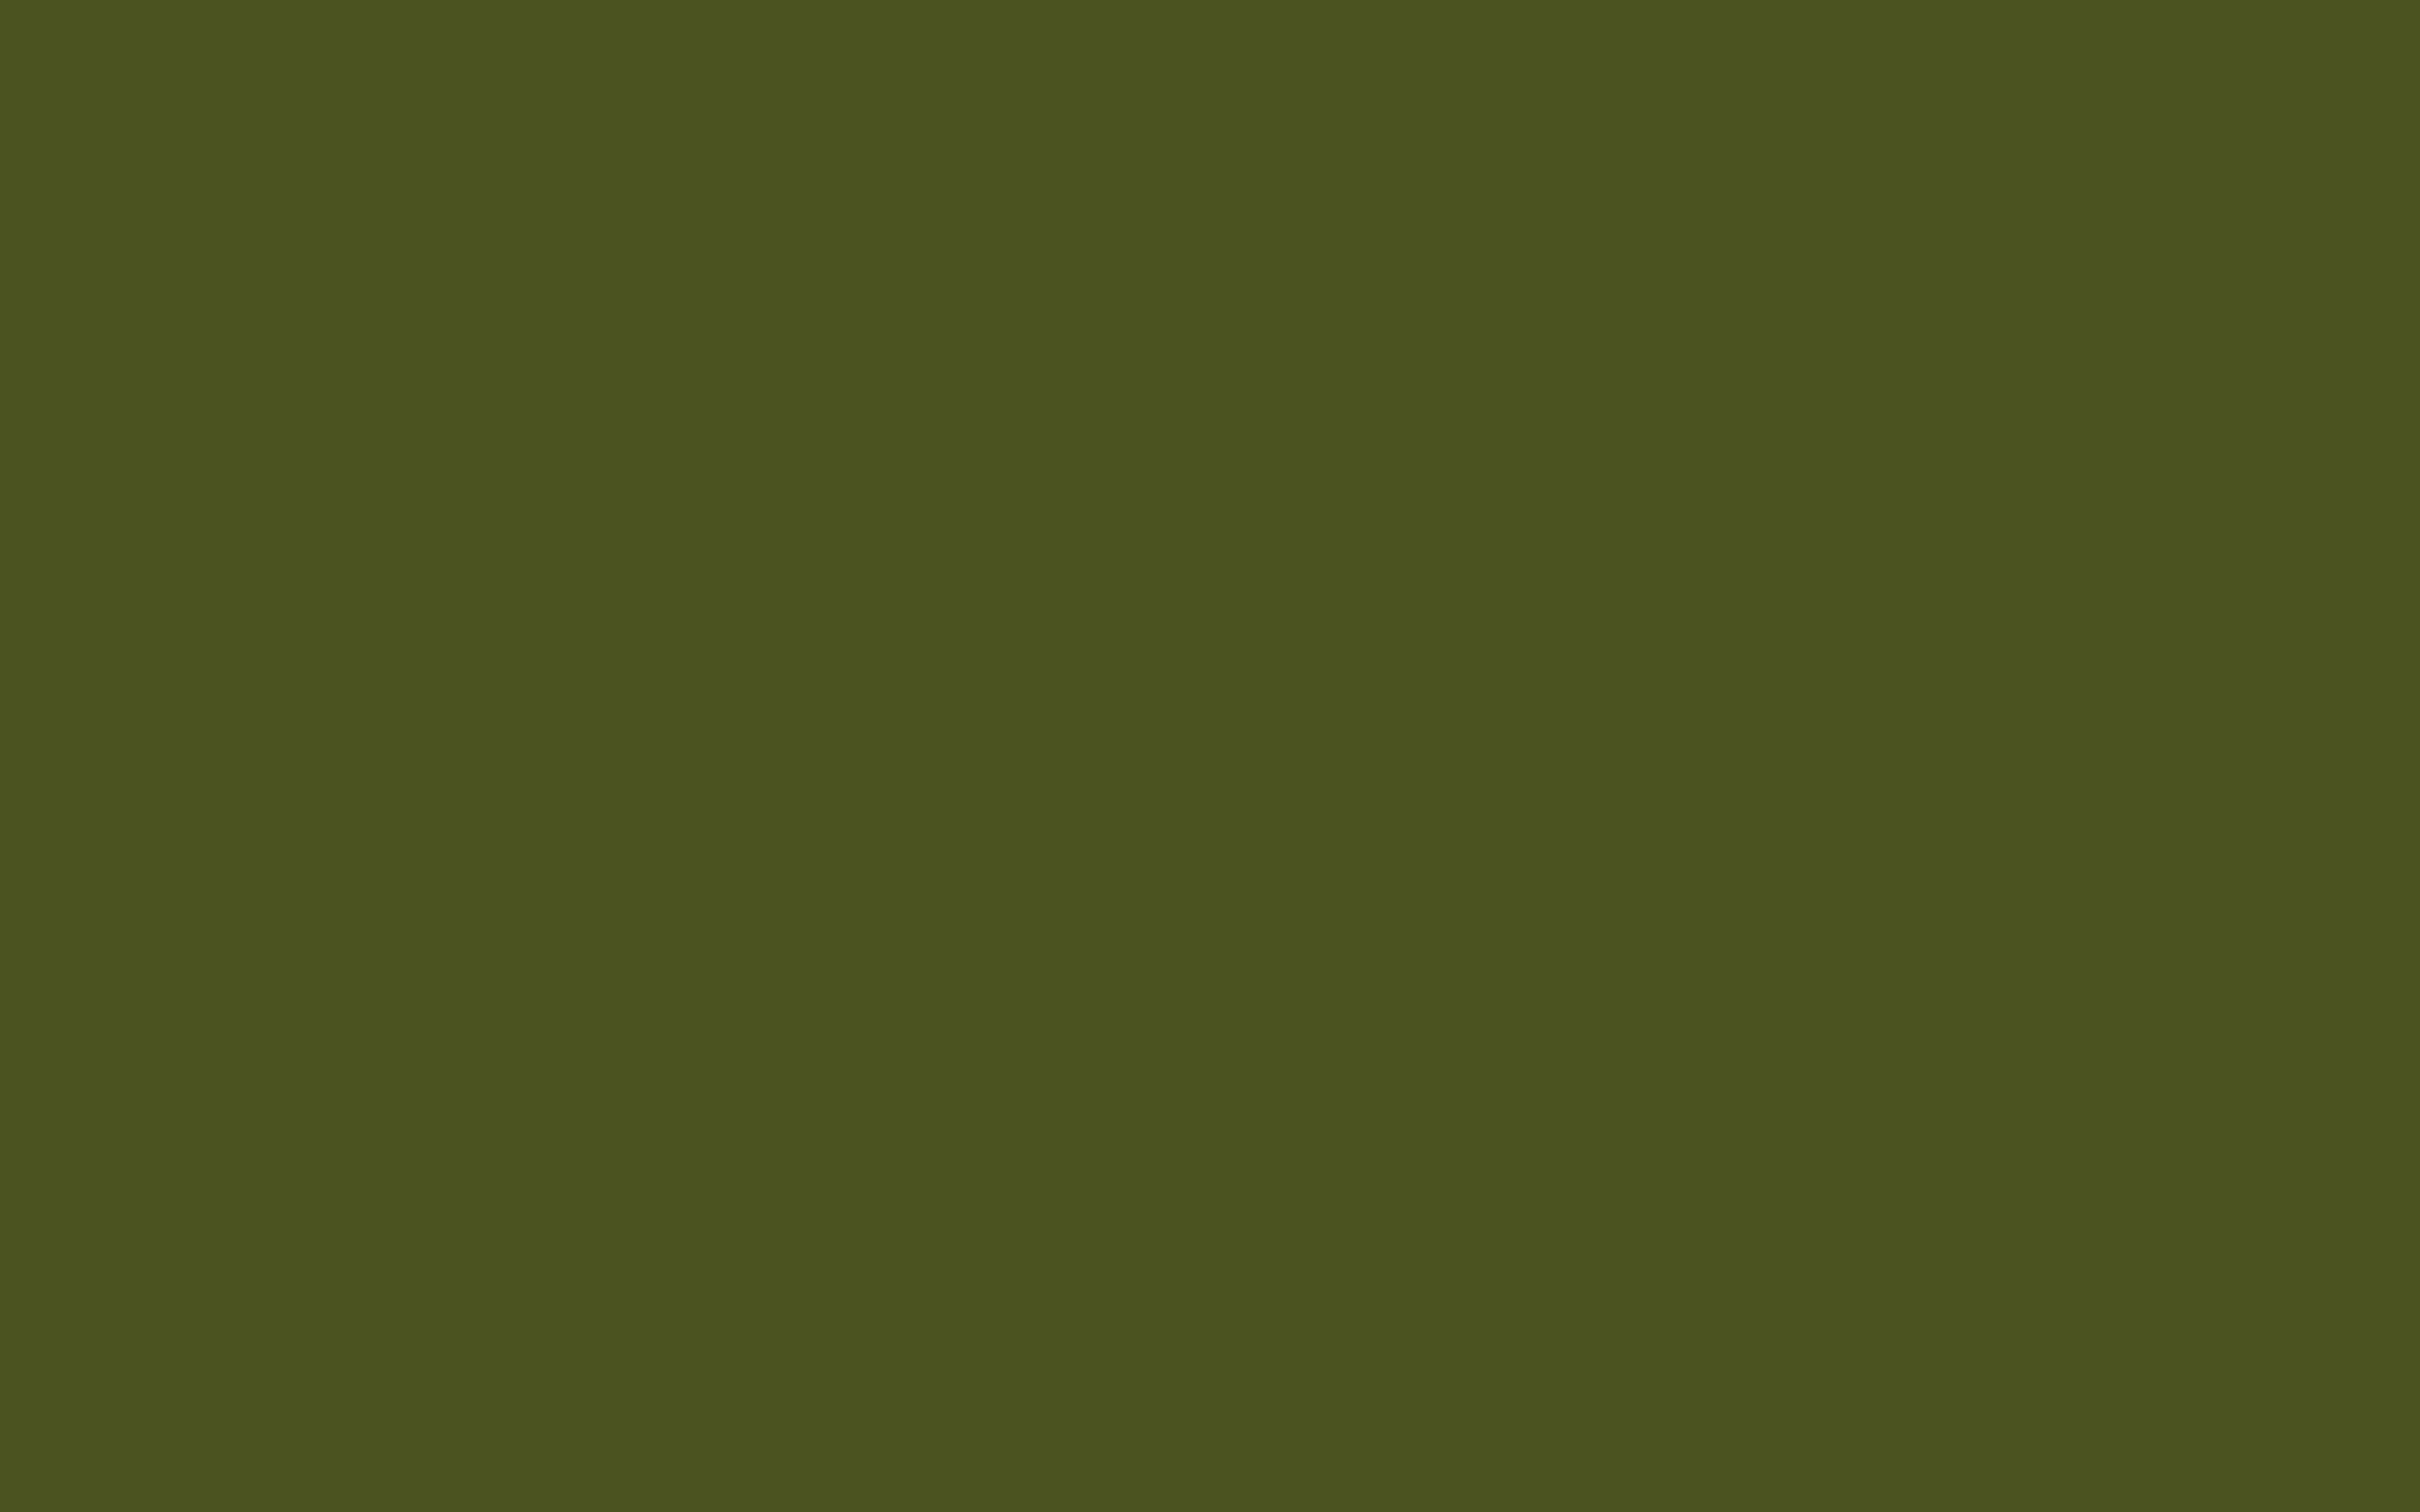 2560x1600 Army Green Solid Color Background